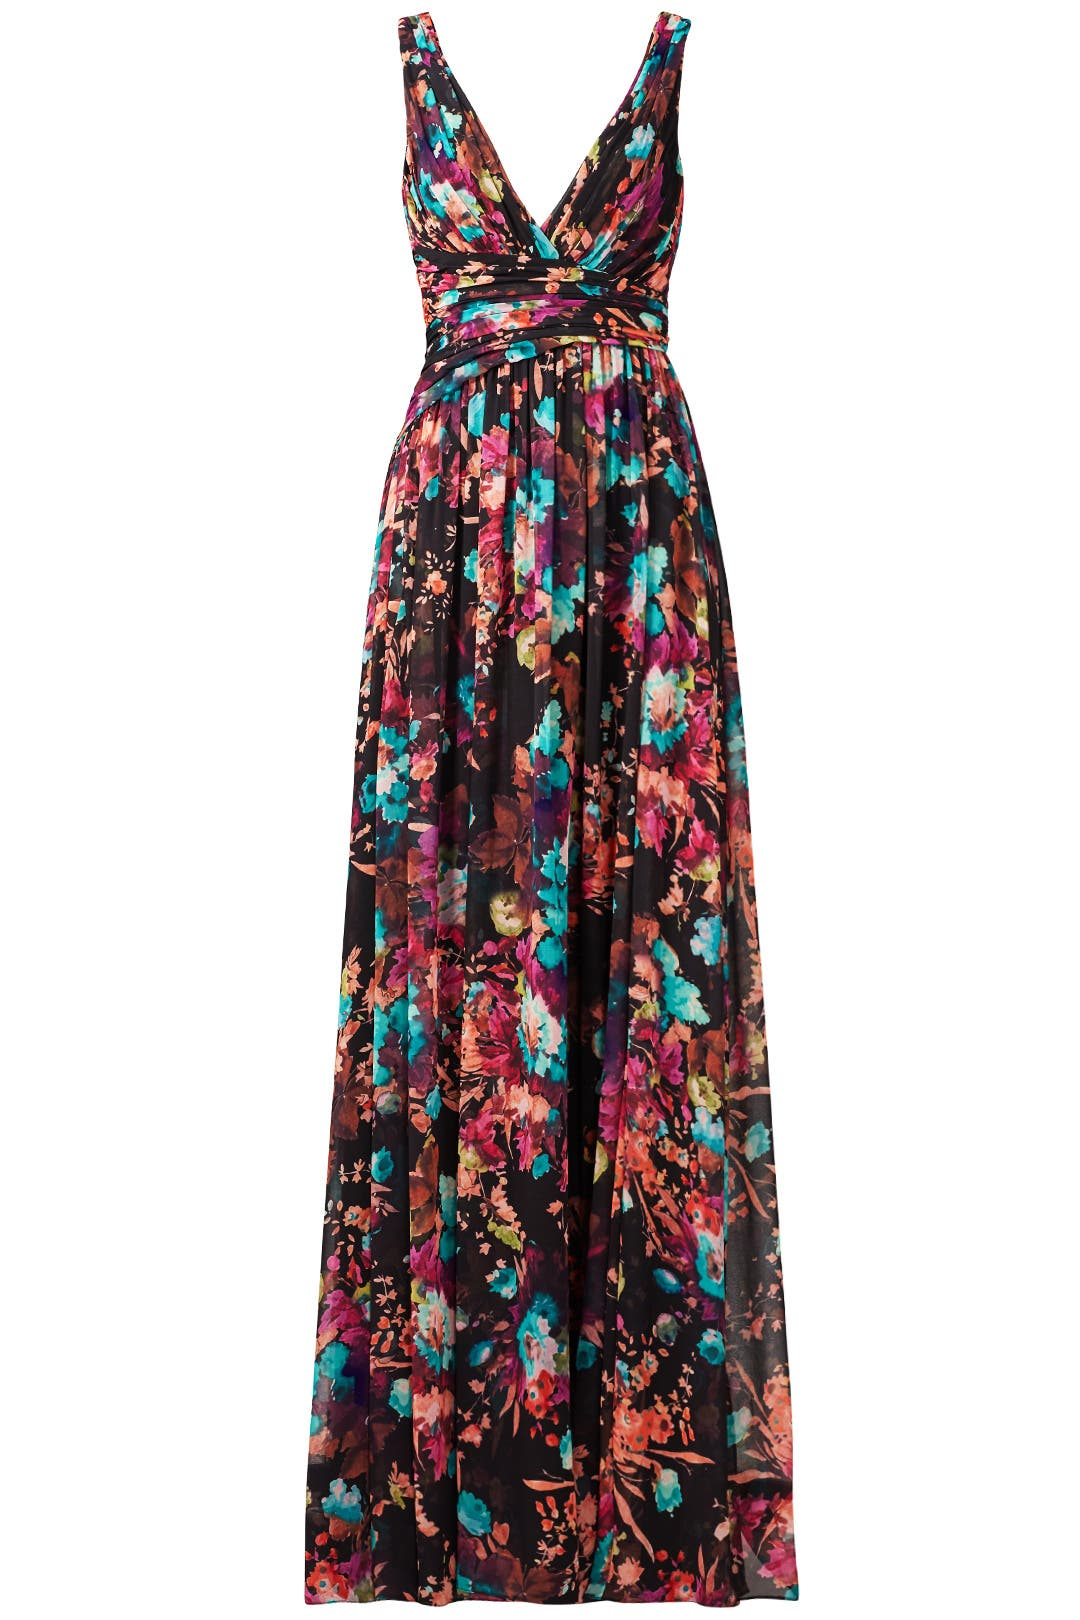 Dark Floral Gown by Badgley Mischka for $110 - $130 | Rent the Runway